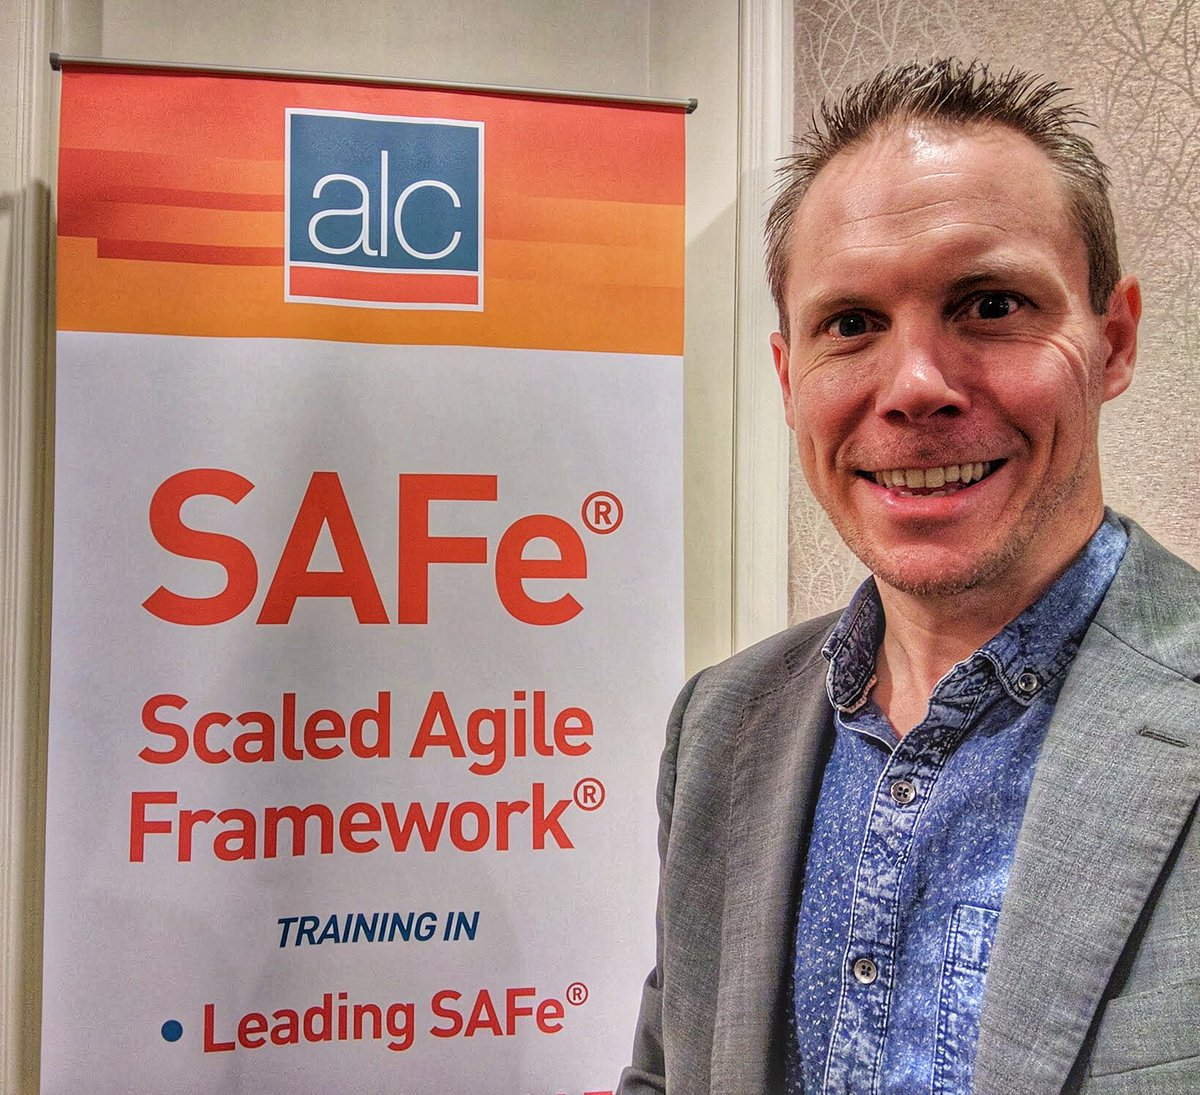 What are the Benefits of Using the Scaled Agile Framework? - Paul Colmer #Agile #DevOps #CloudComputing #IoT #DataScience #CyberSecurity @alcgroup<br>http://pic.twitter.com/e9Q7bEVV66